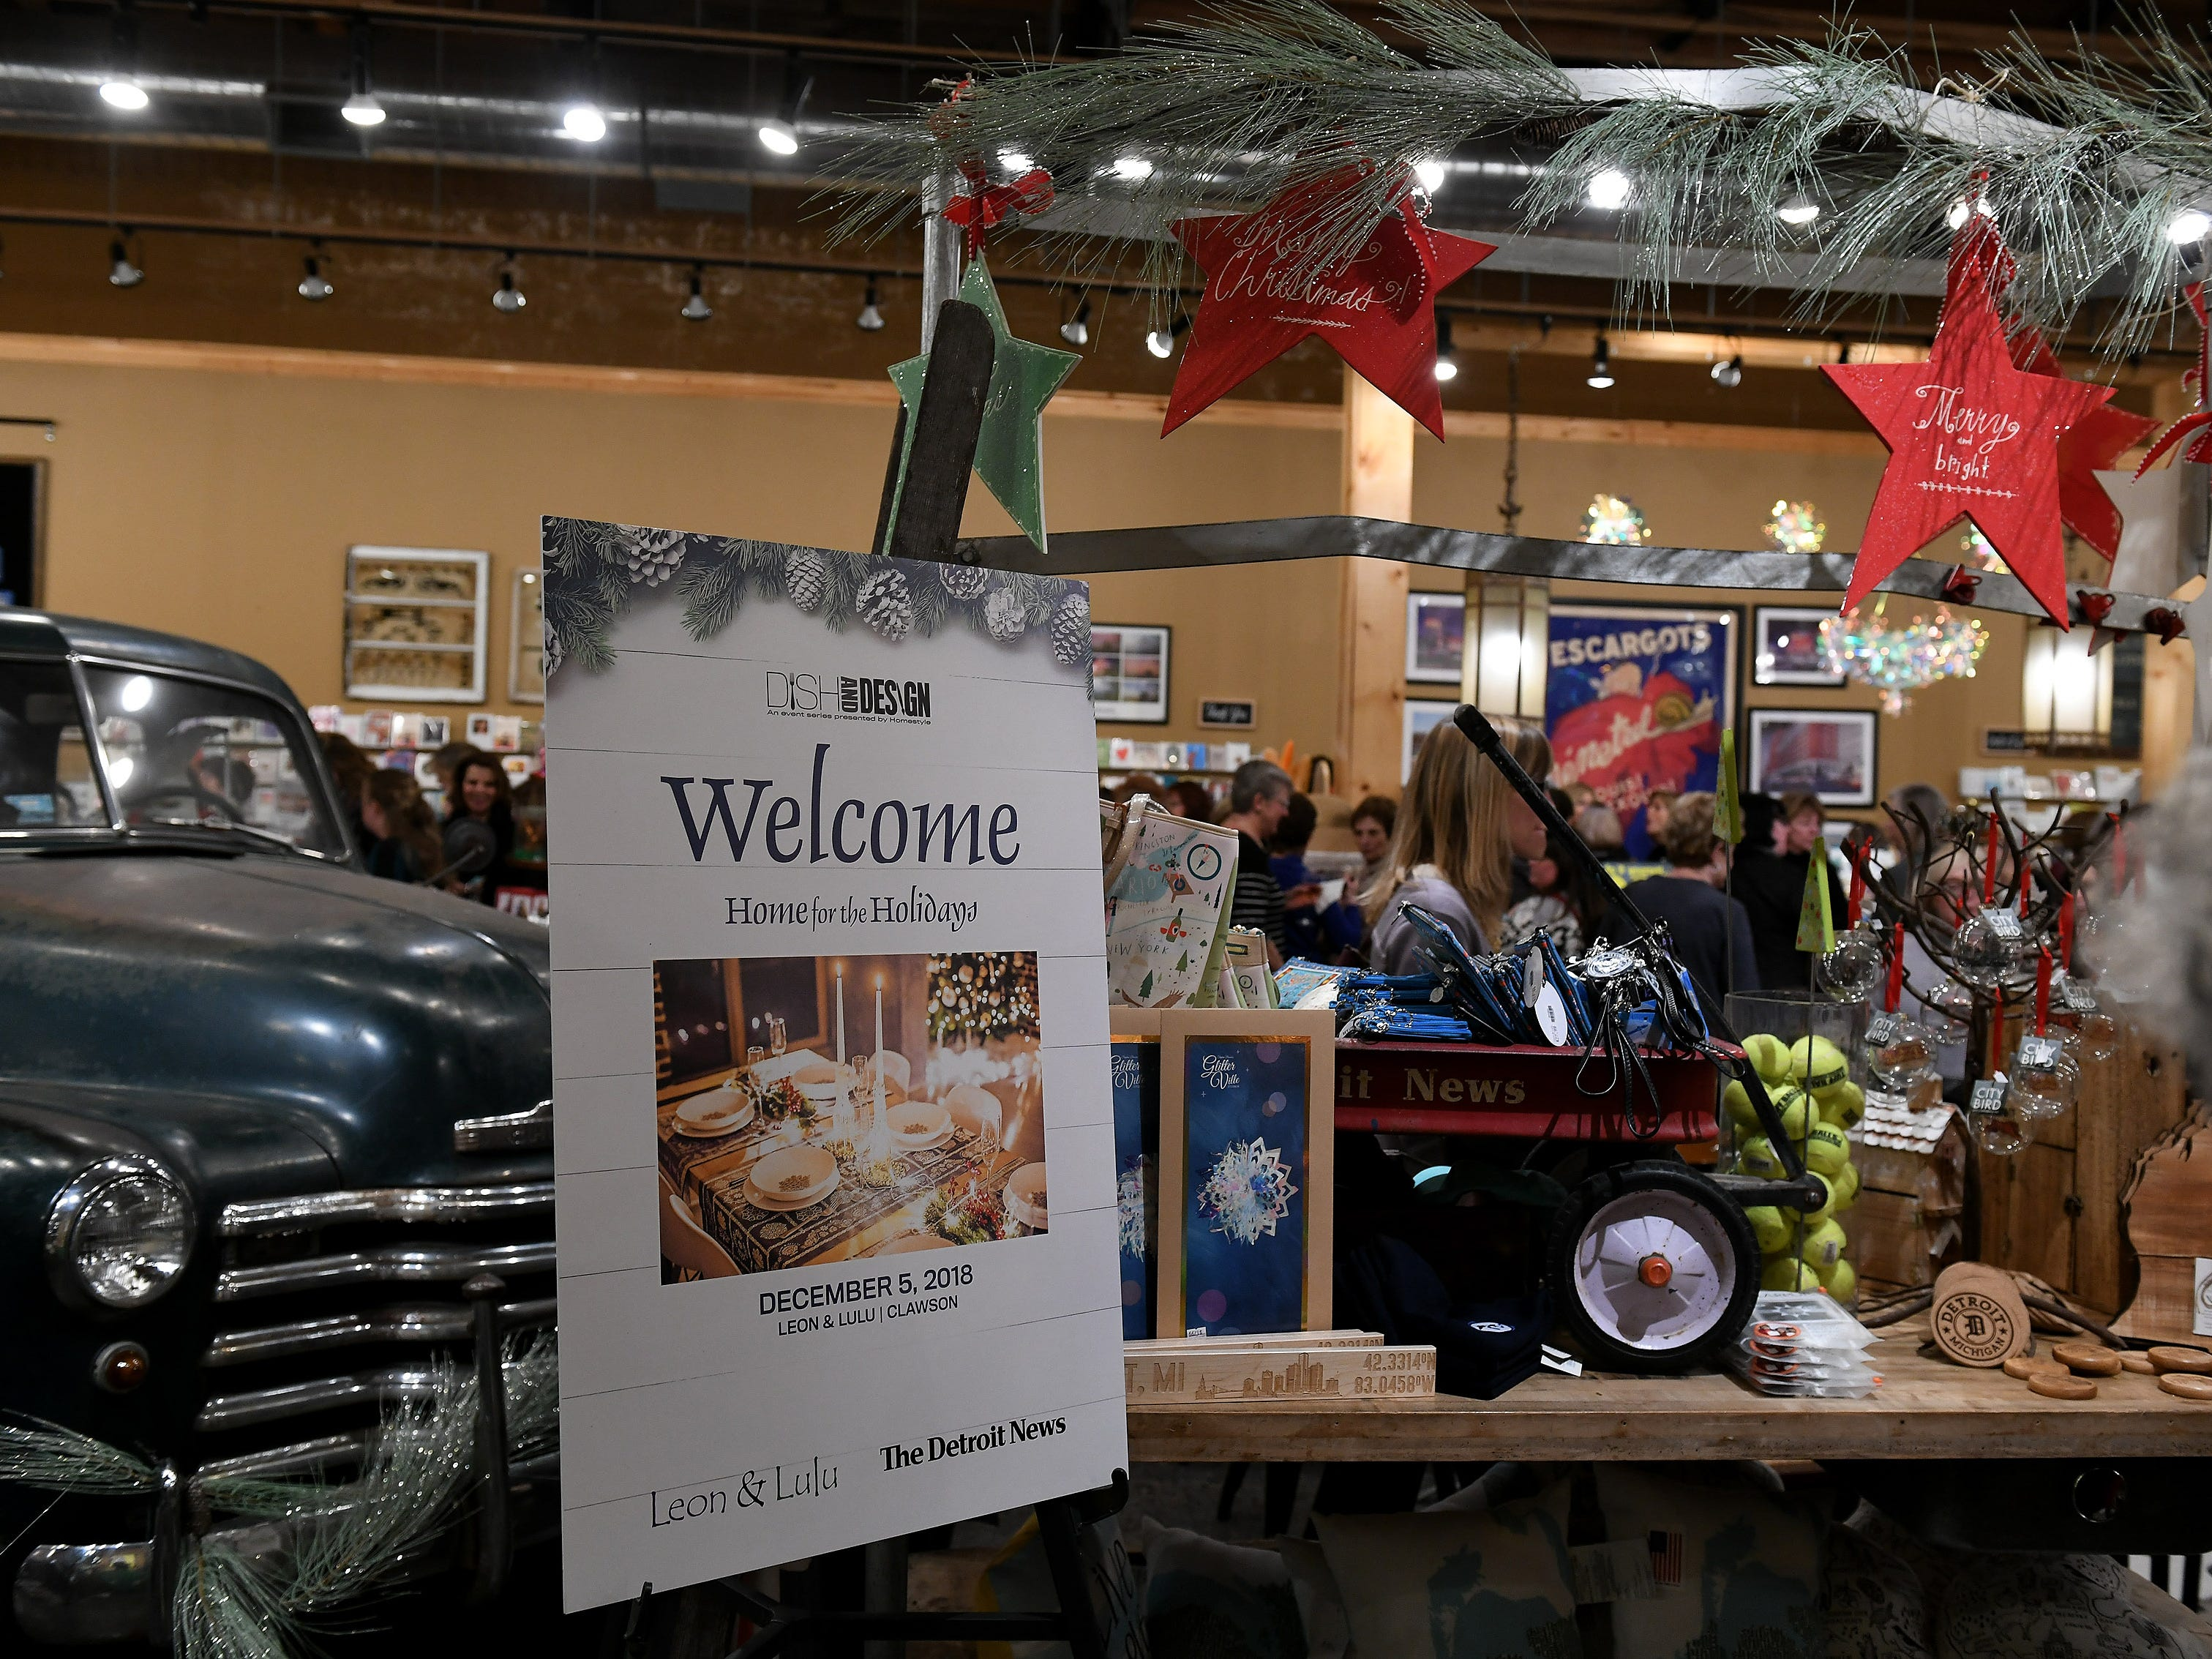 The welcome sign at the Home for the Holidays event.